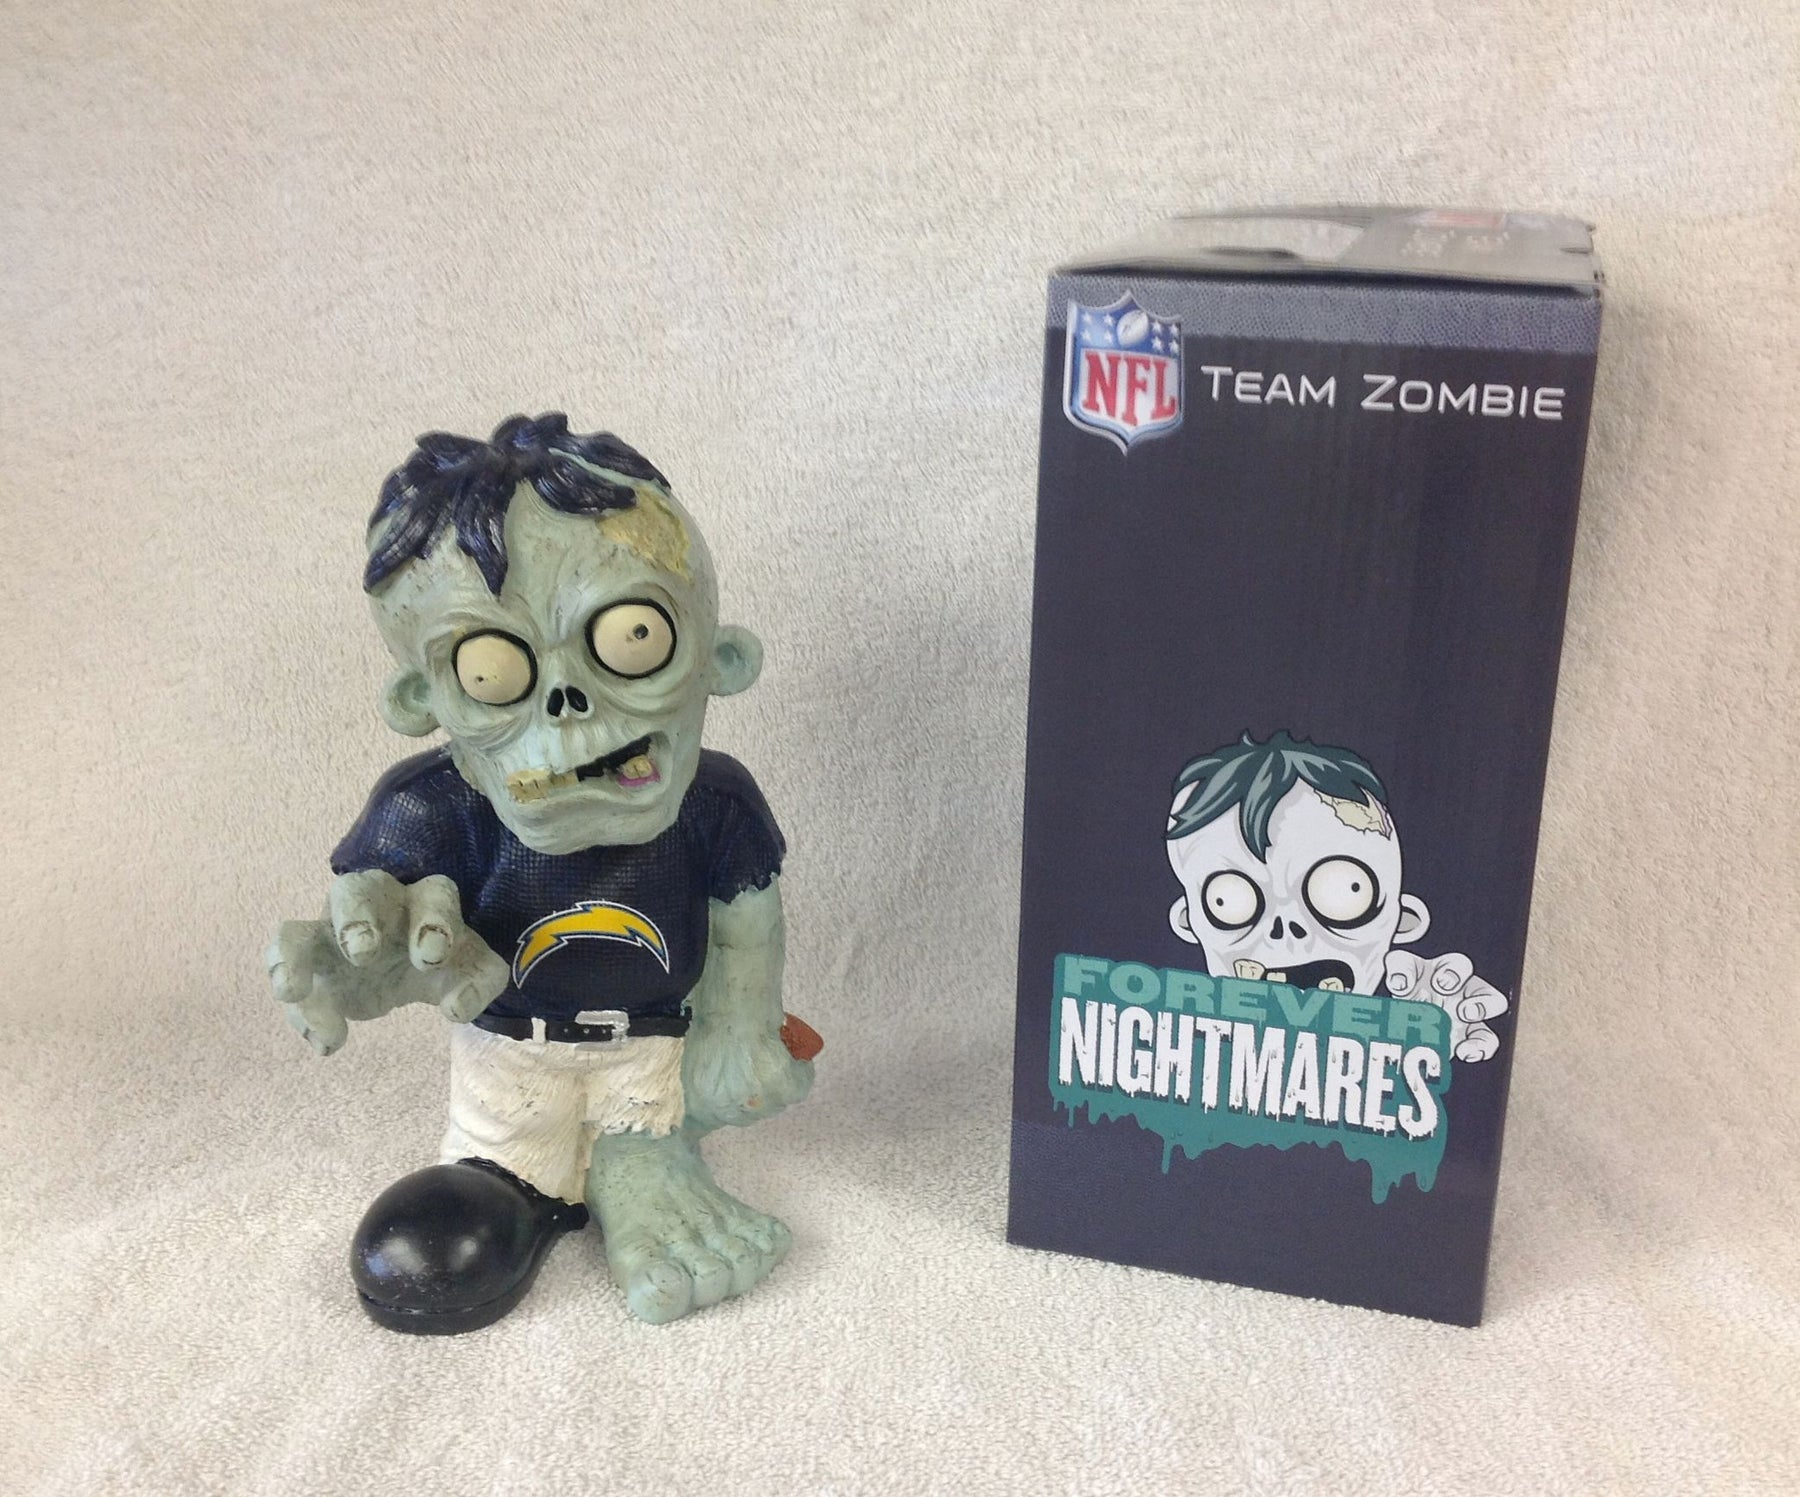 San Diego Chargers Zombie - BobblesGalore